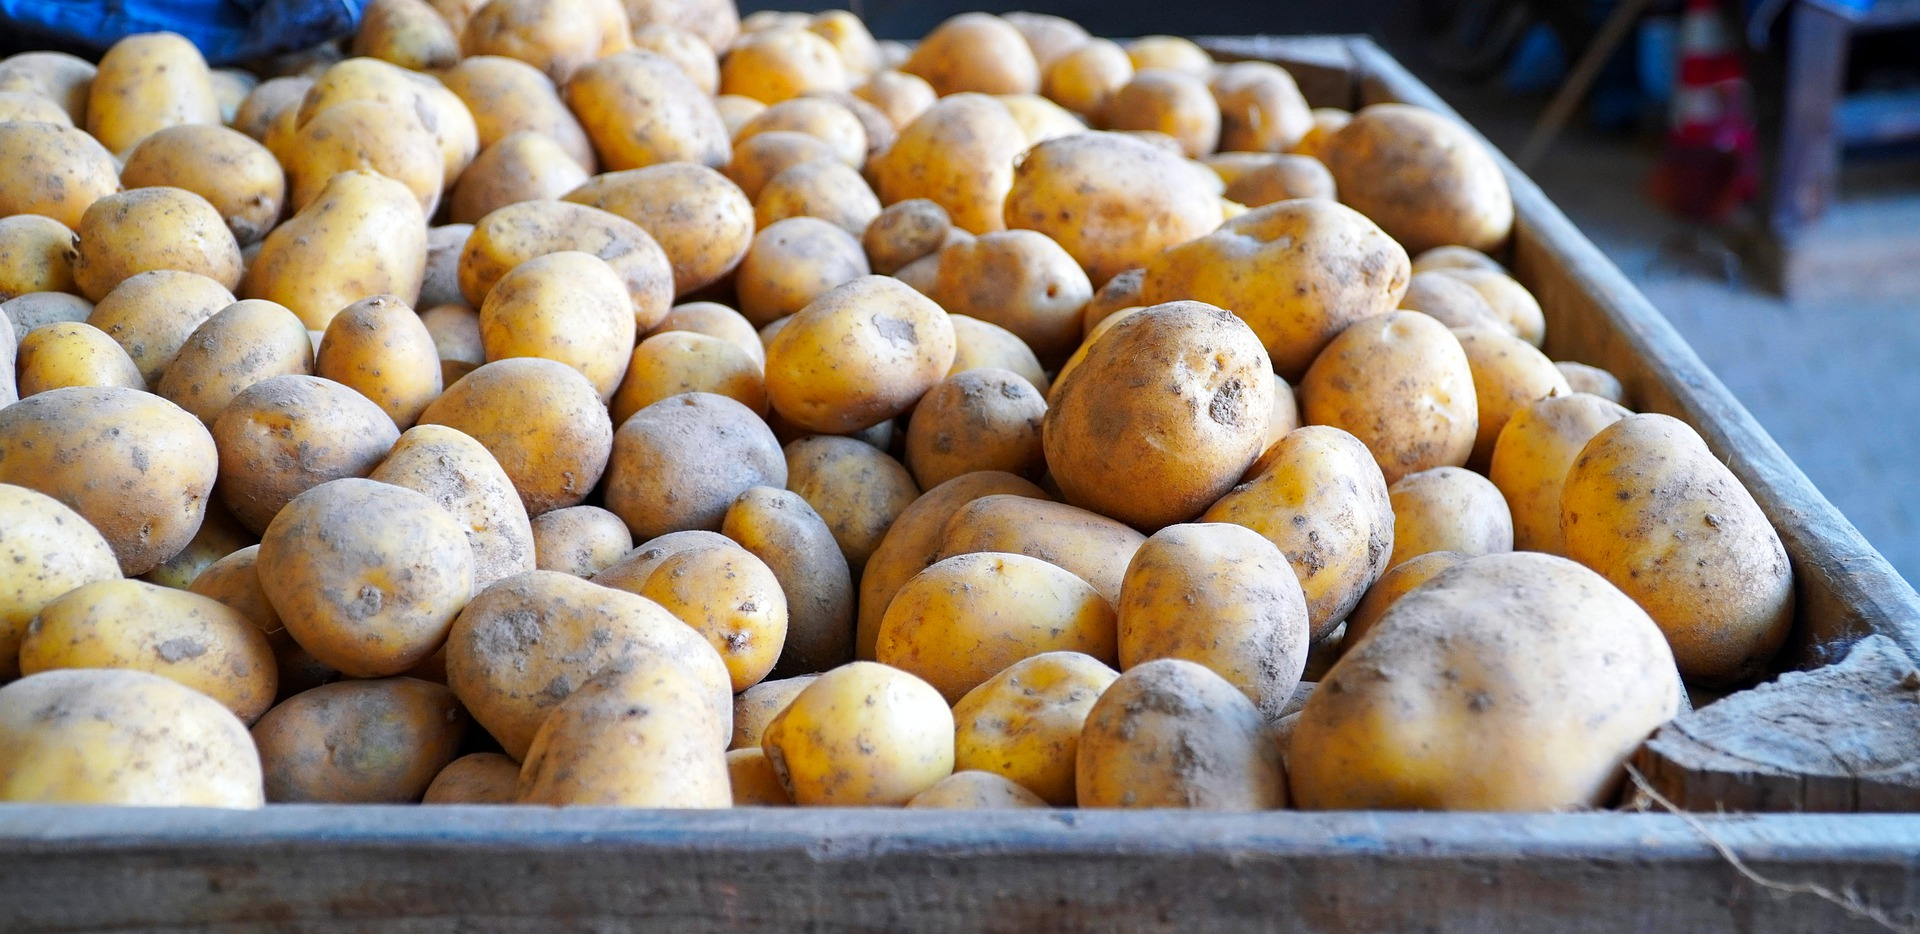 It's crunch time for SA potatoes as local farmers try to recover from lockdown lows